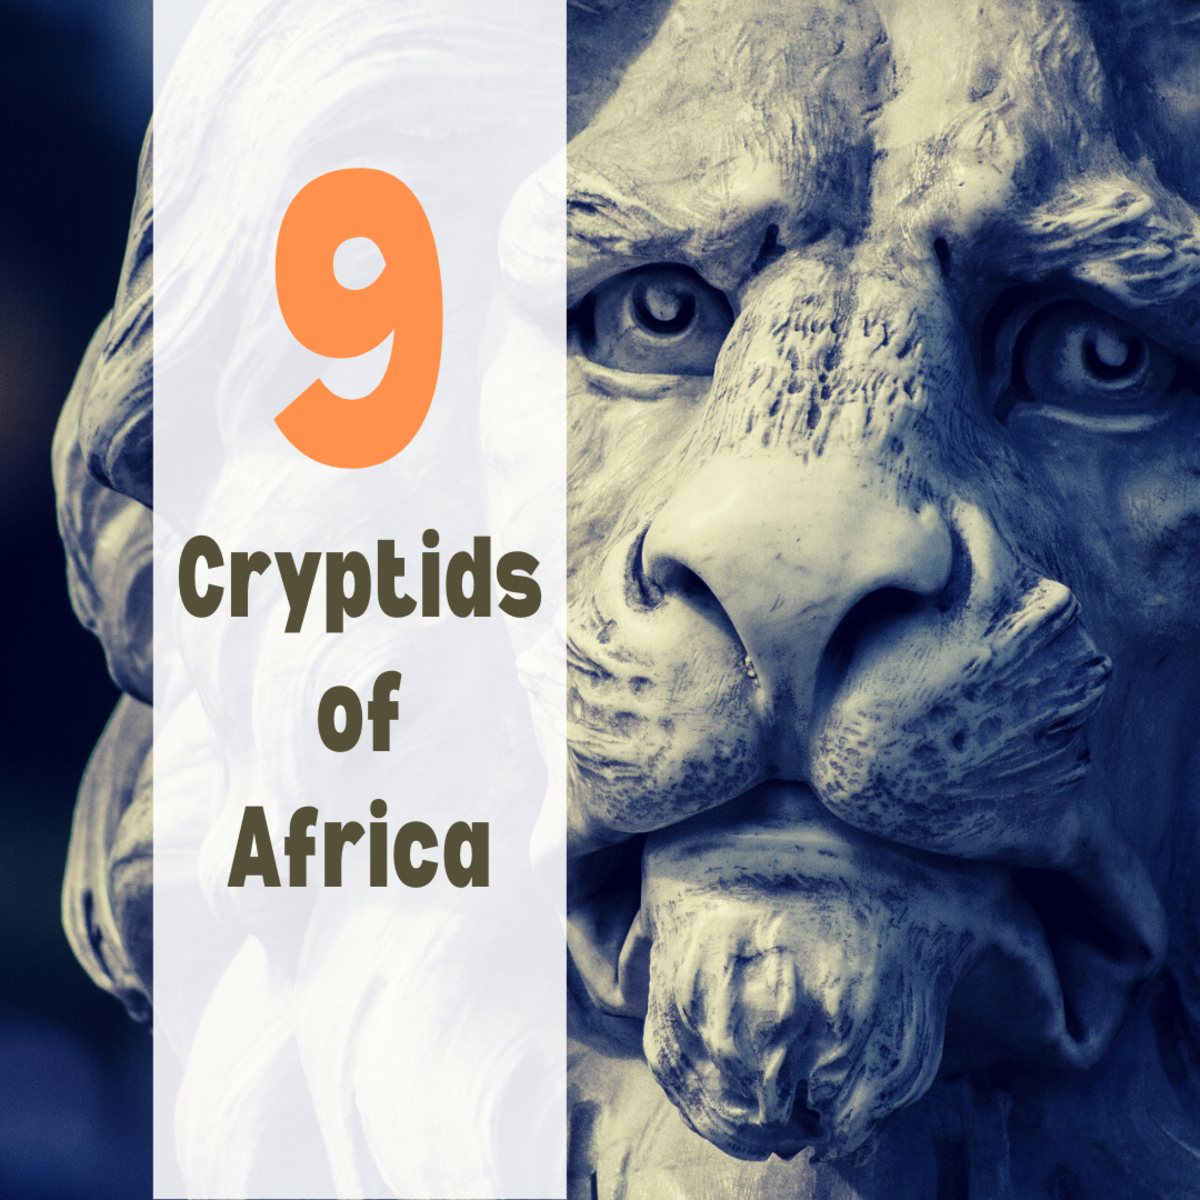 Learn about nine legendary creatures in Africa, from the lion-like Marozi to the Mamlambo river monster.